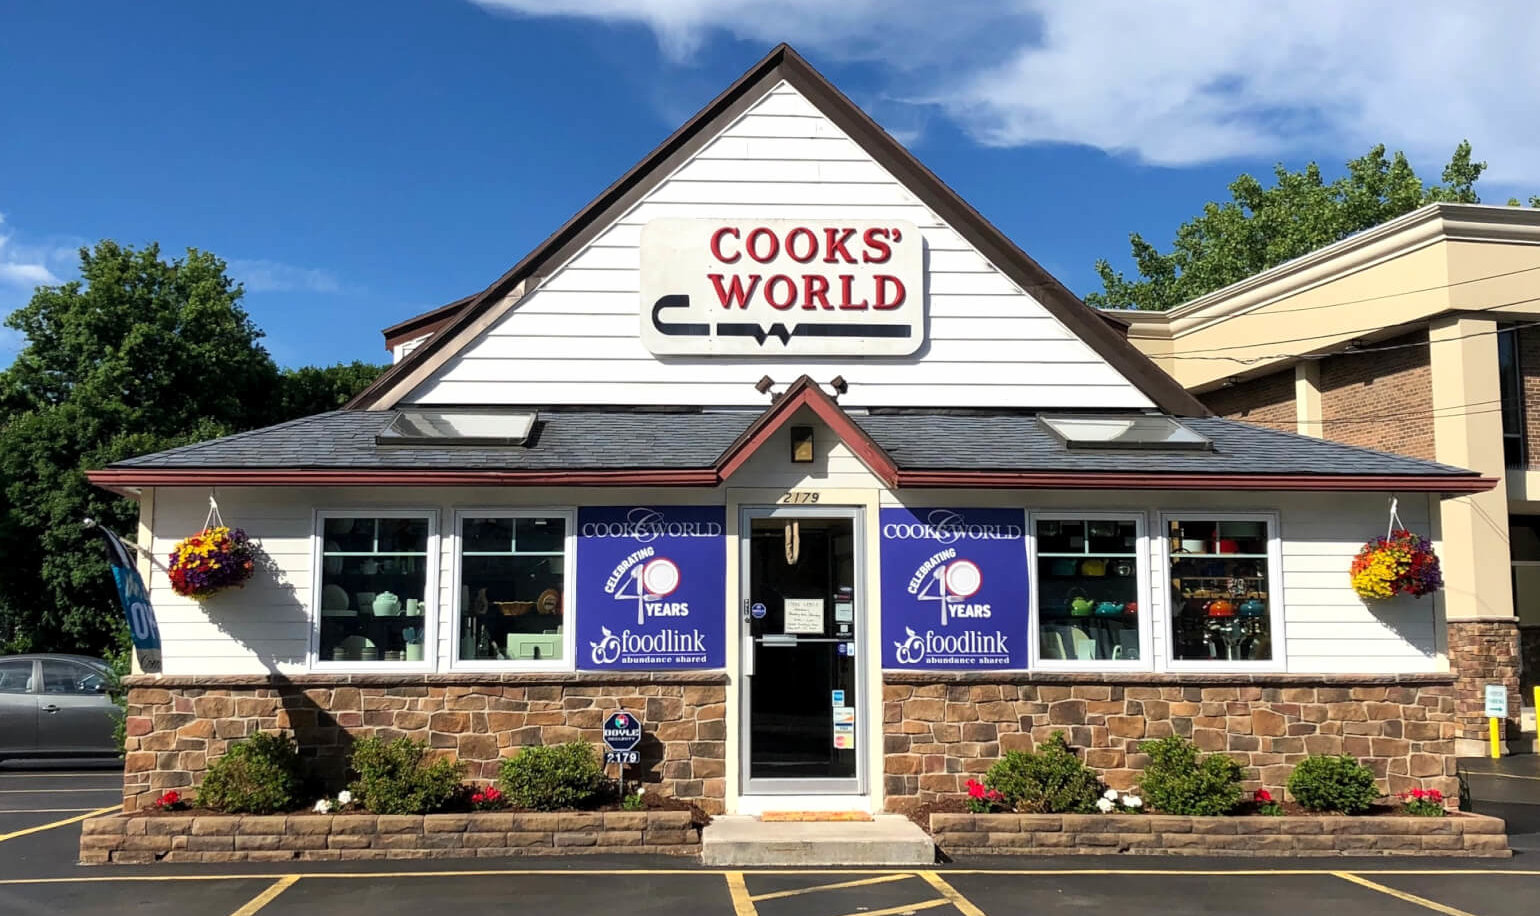 Cooks World store front